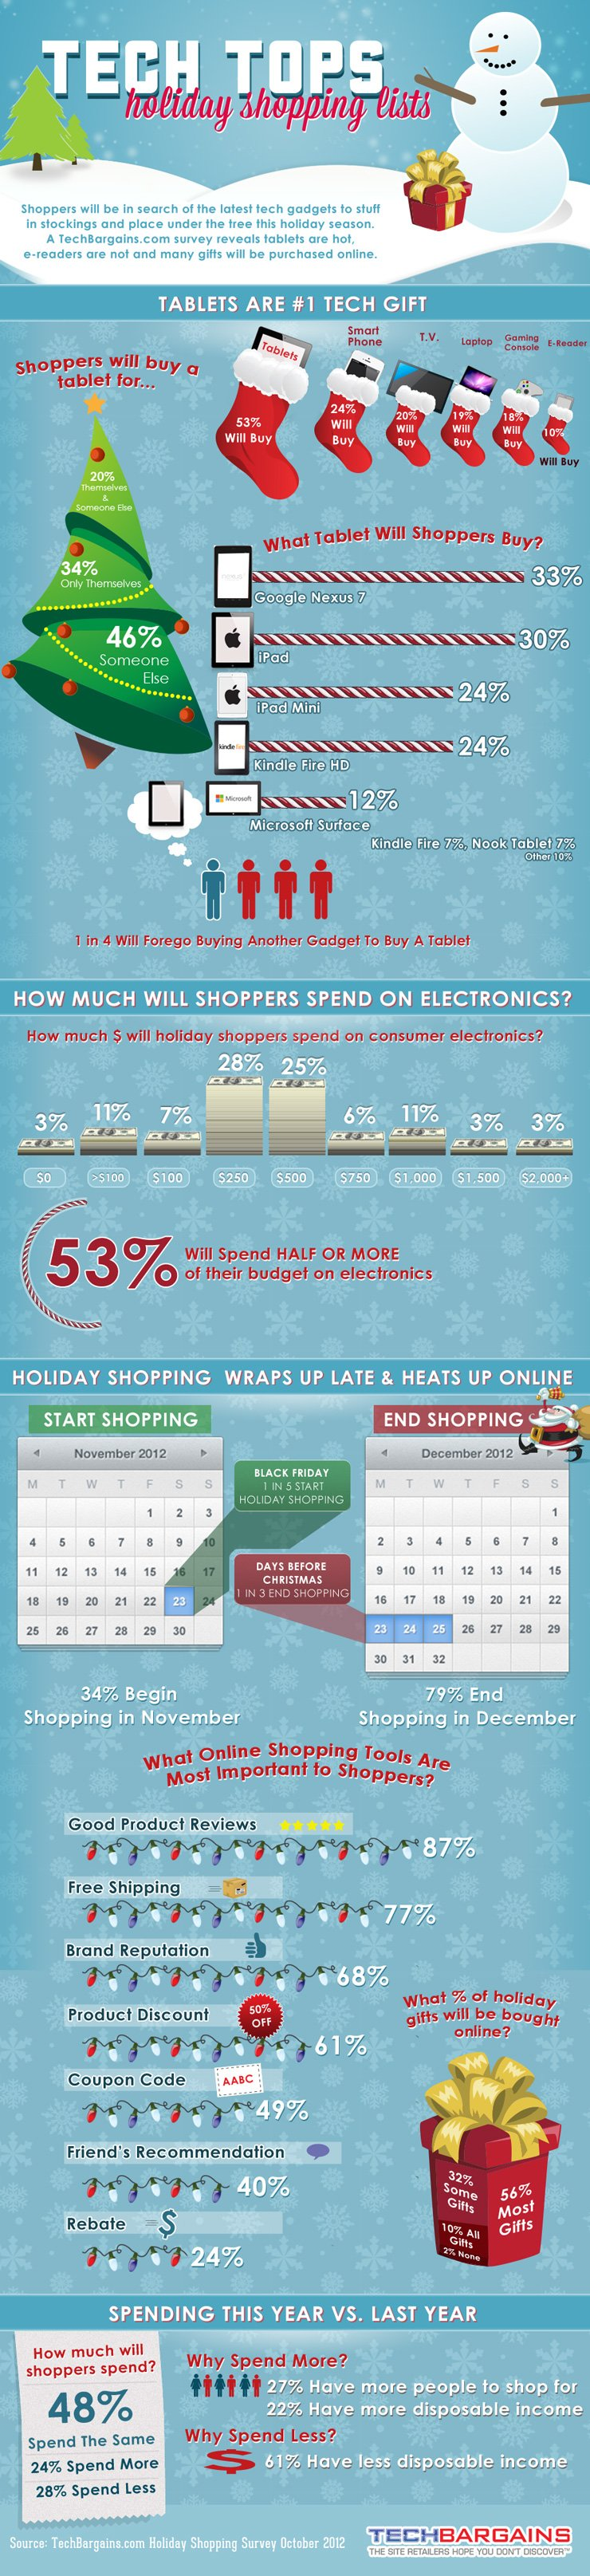 Holiday-Shopping-InfoGraphic_740